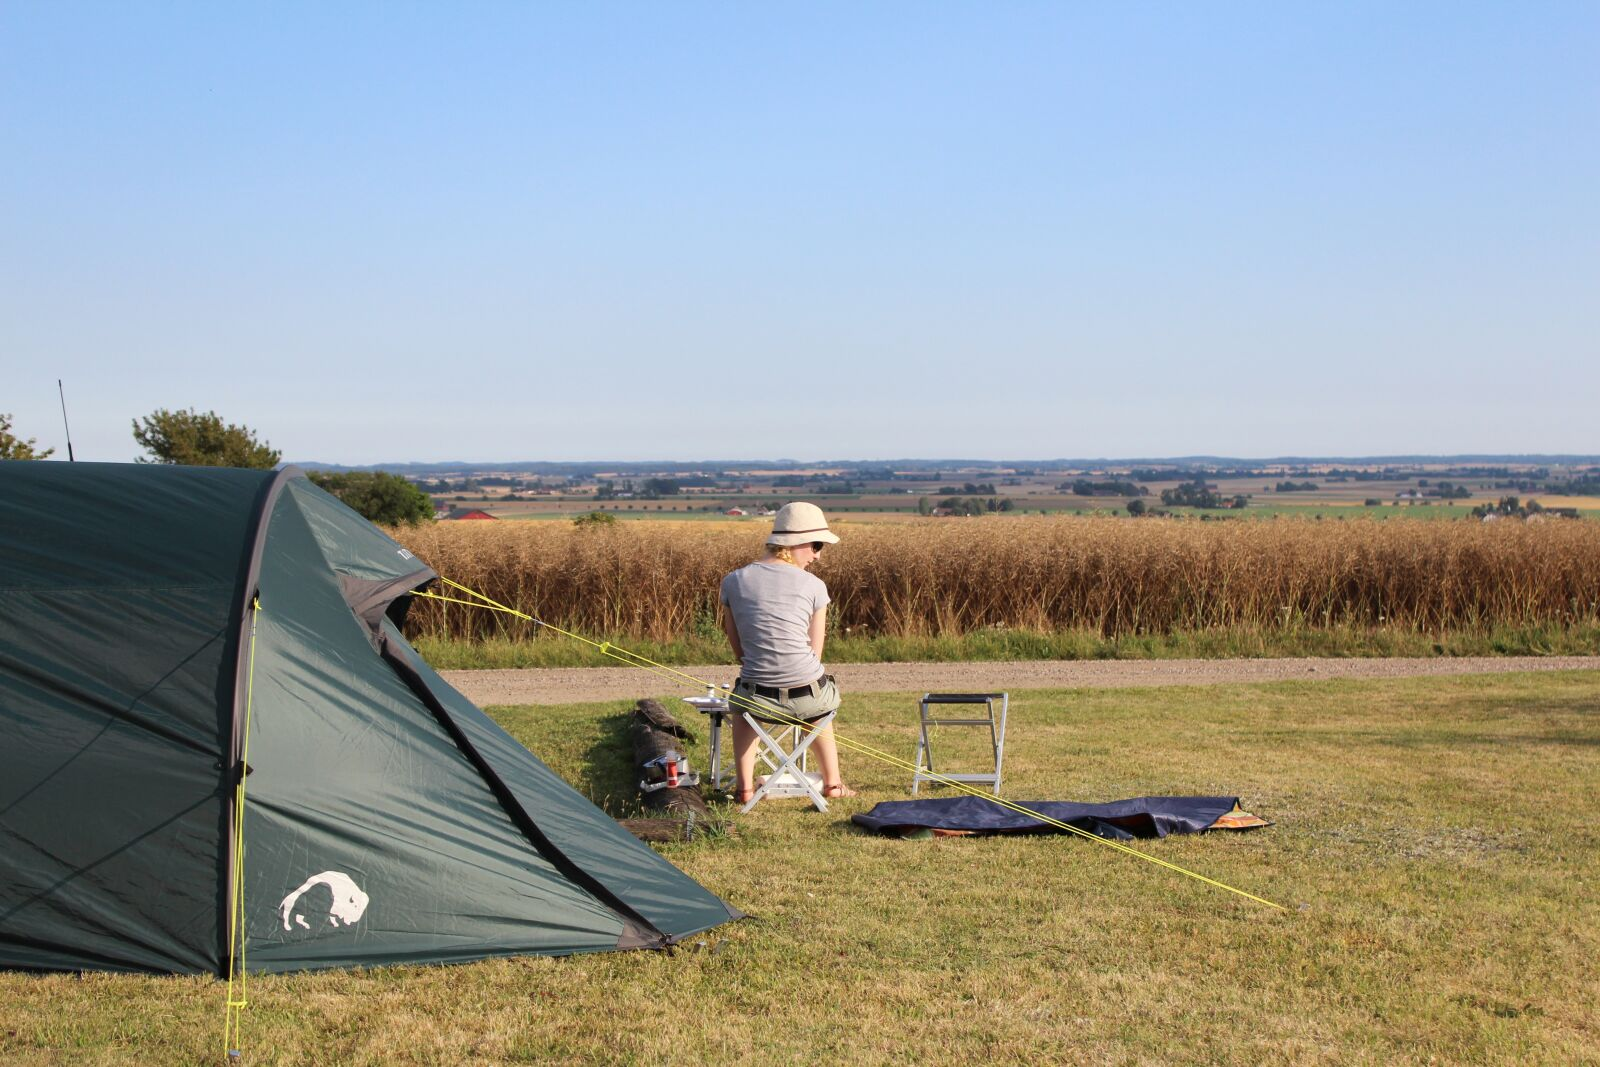 """Canon EOS 600D (Rebel EOS T3i / EOS Kiss X5) sample photo. """"Camping, wild, nature"""" photography"""